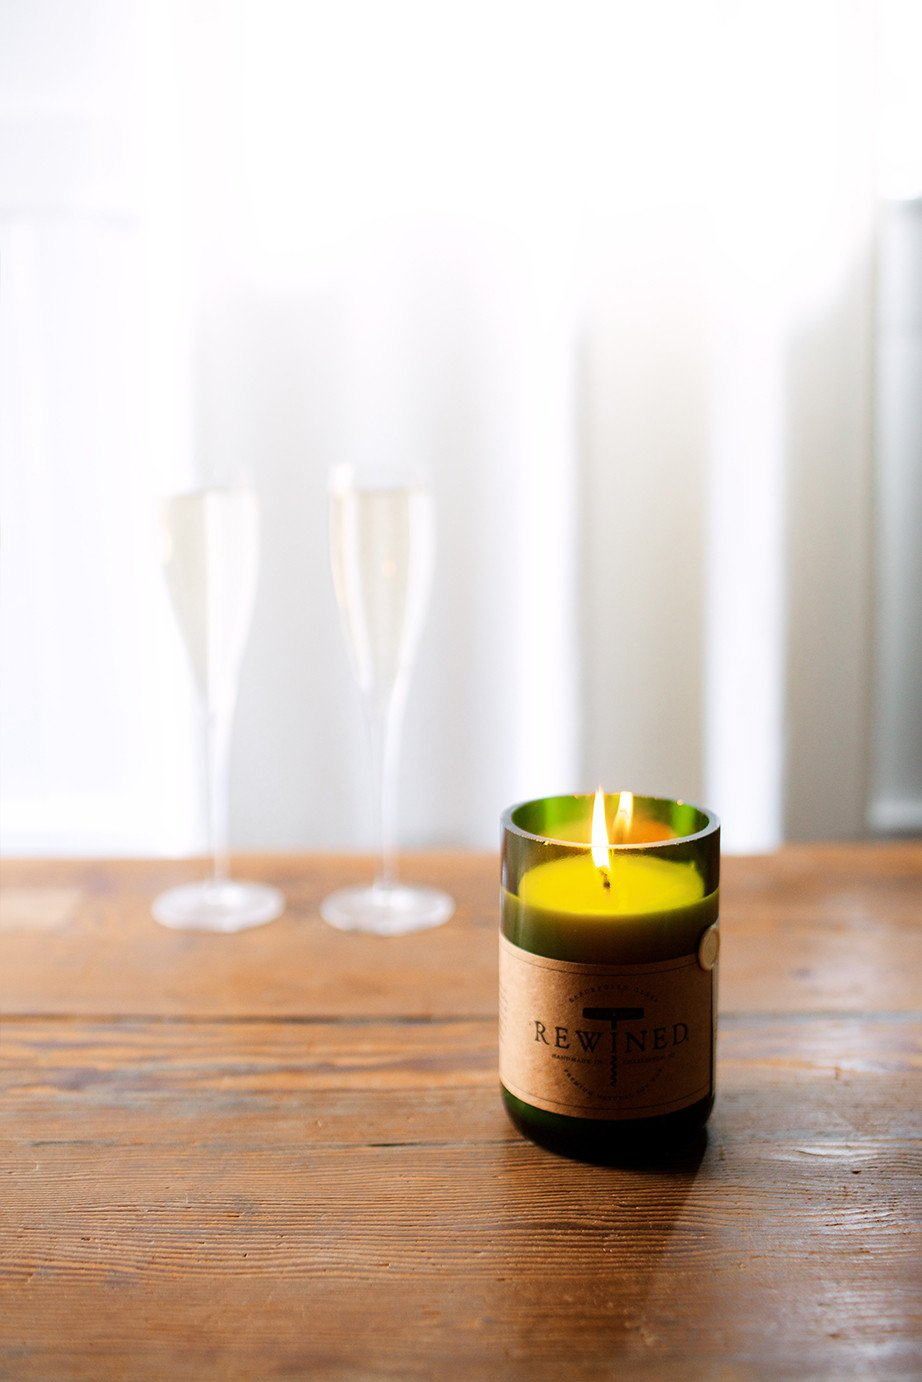 Rewined - Champagne Signature Glass Candle